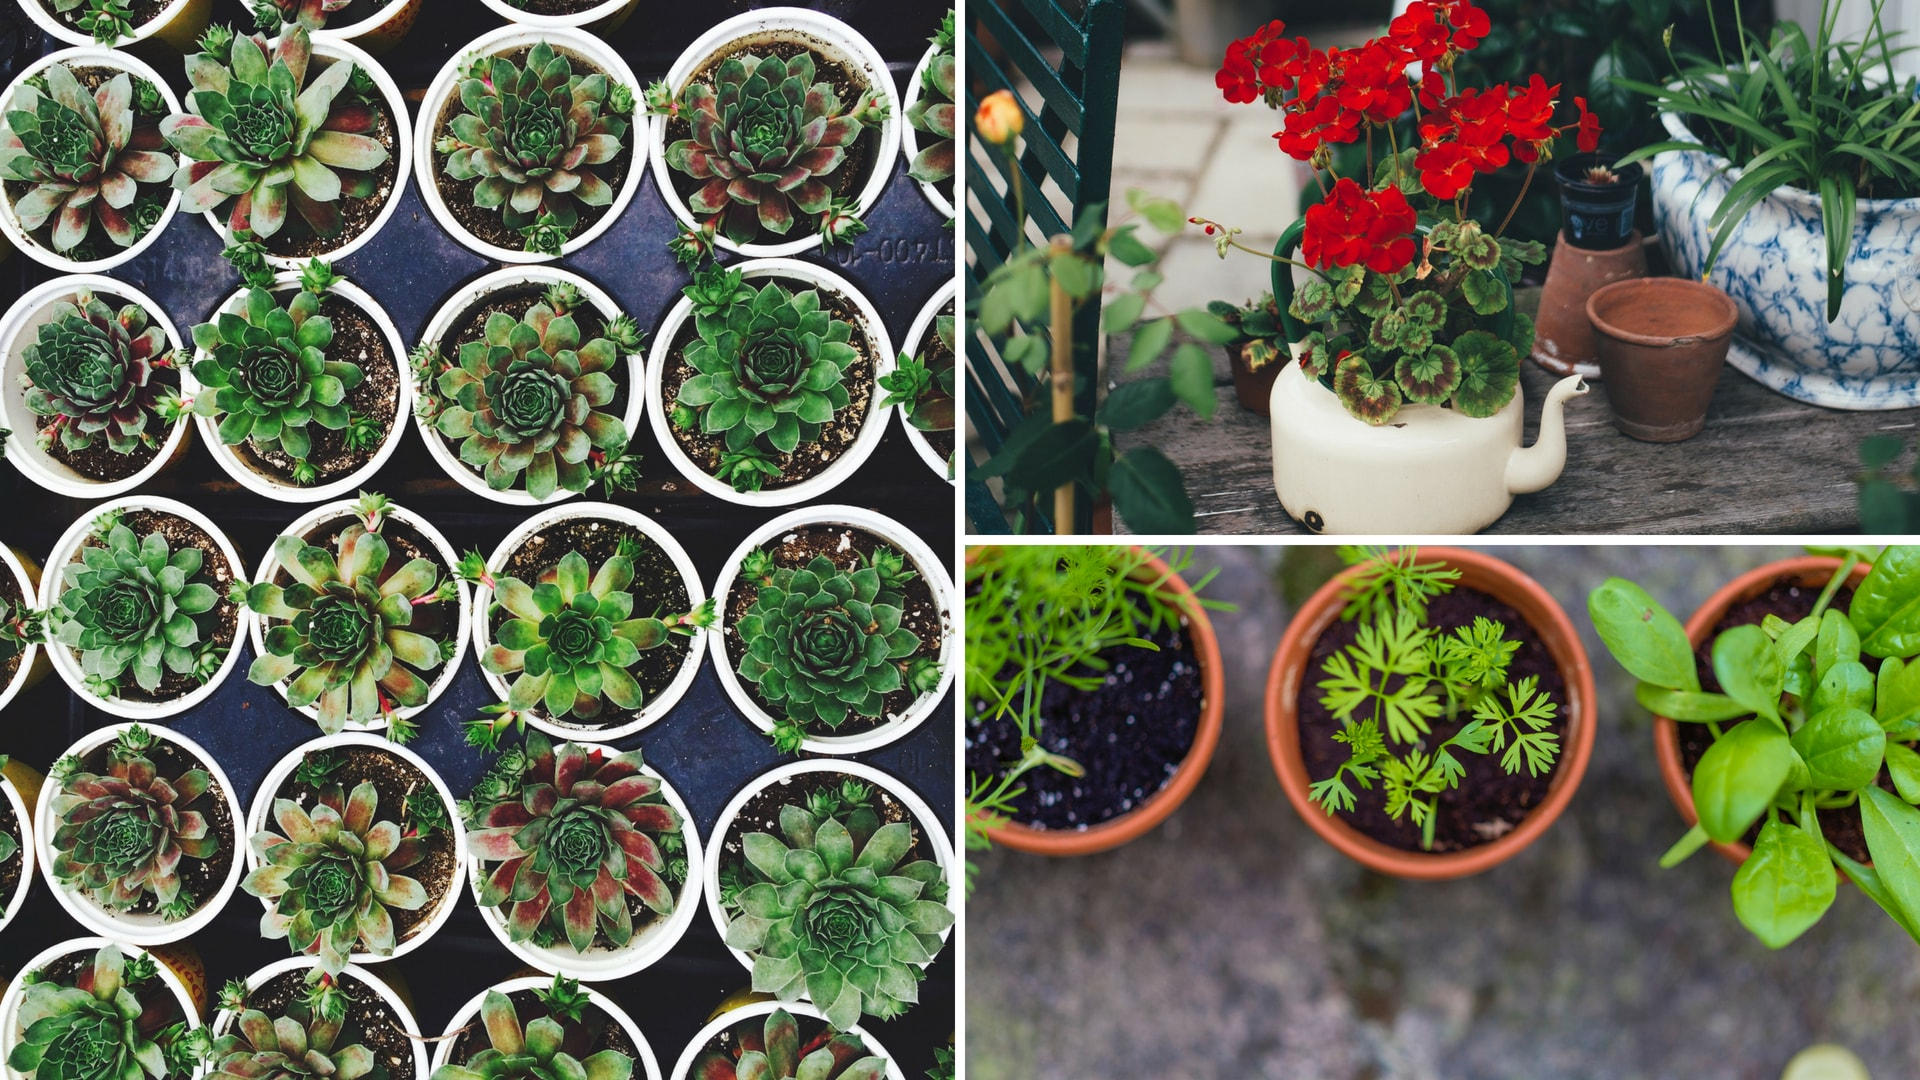 thehandymano mano mano decking ideas for small gardens plant pots herbs flowers